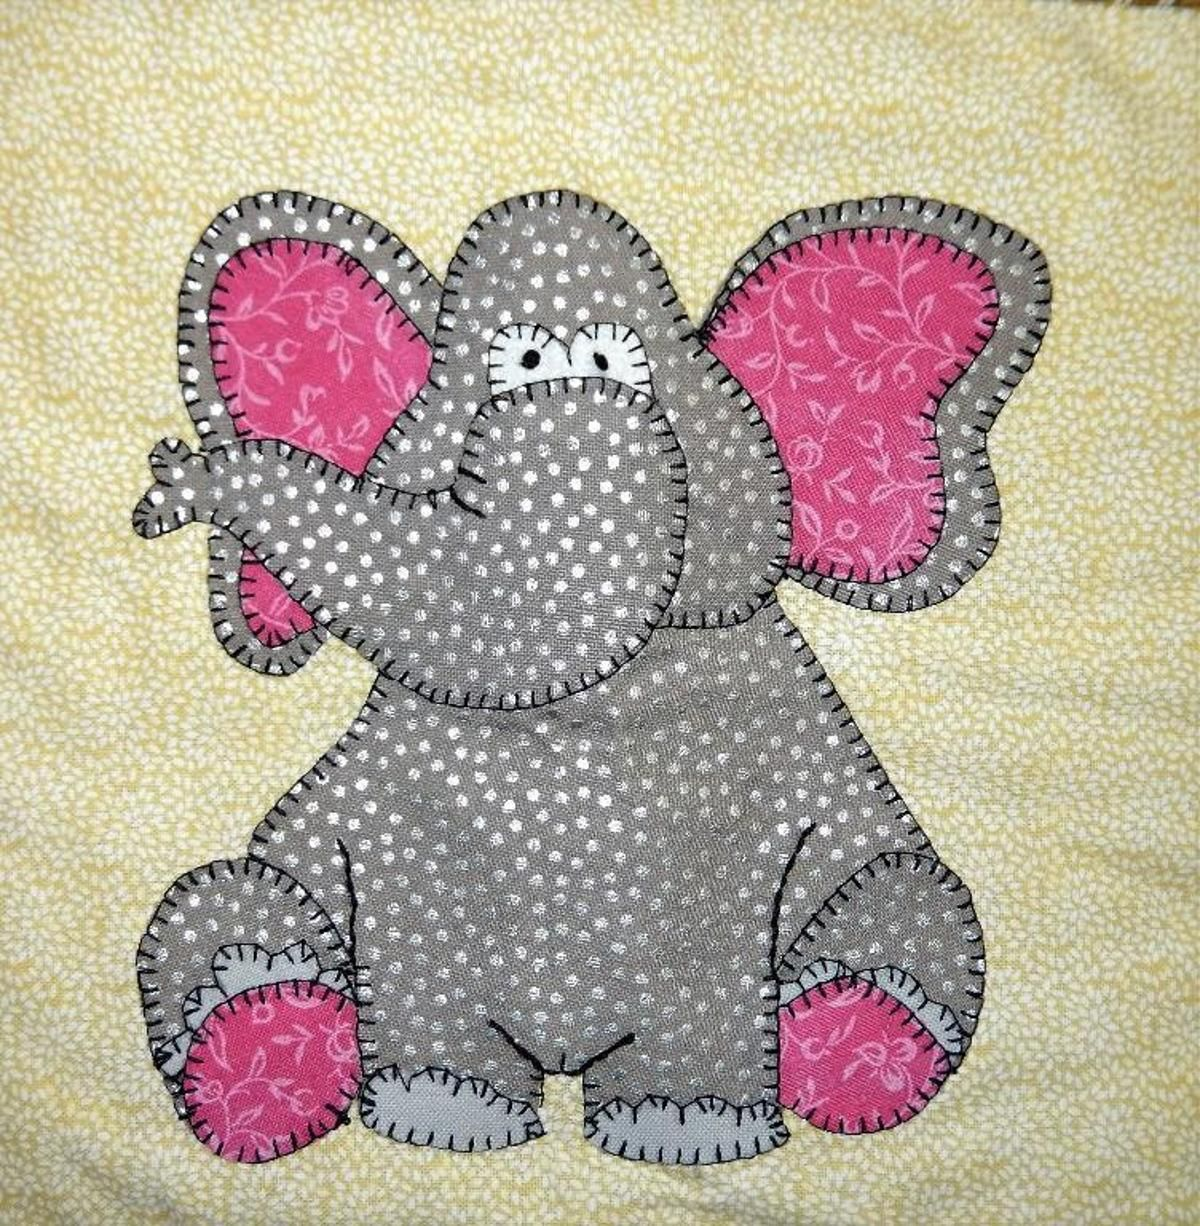 Elephant (African) Applique Quilt Block | Elephant applique ...